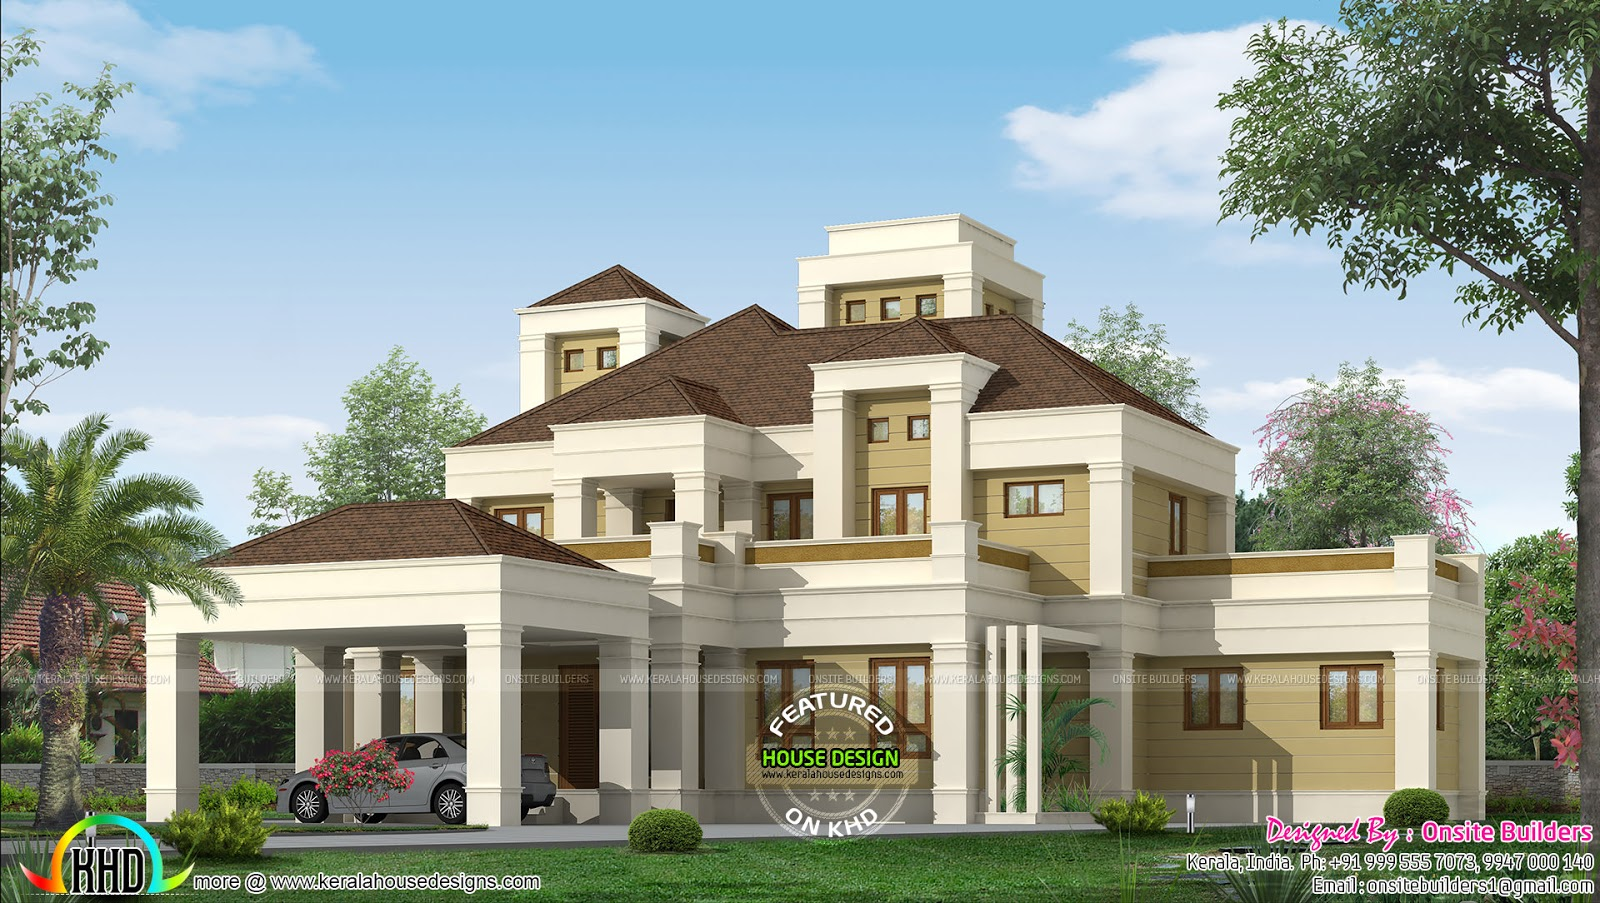 Elegant colonial home plan kerala home design and floor for Elegant home design